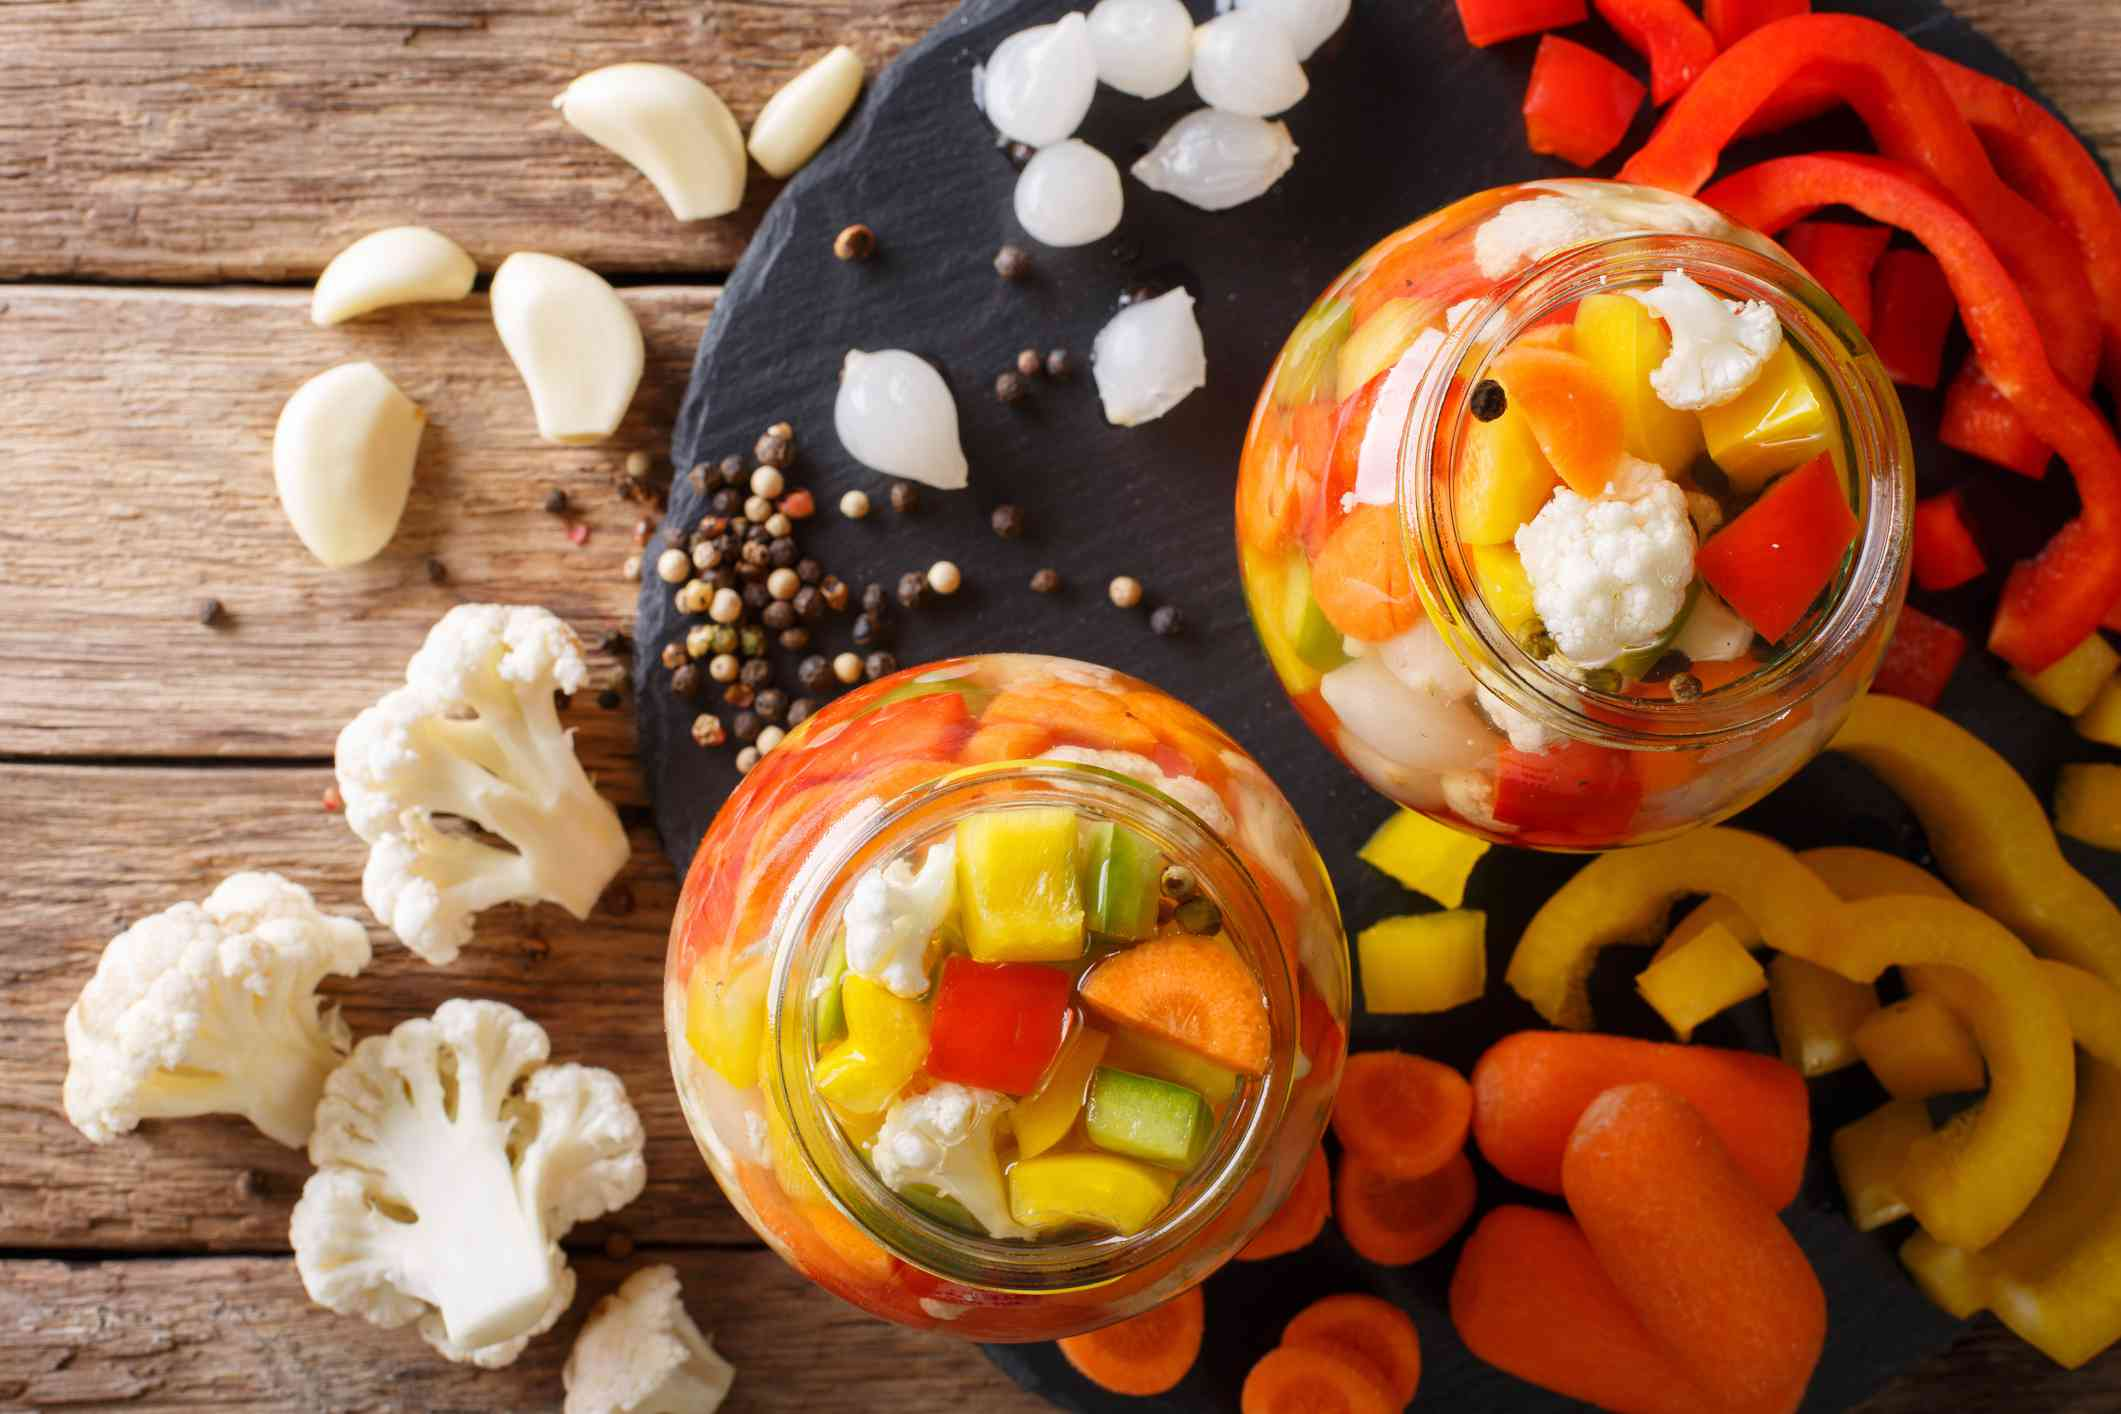 Giardiniera salad from pickled cauliflower, pepper and carrots in glass jars